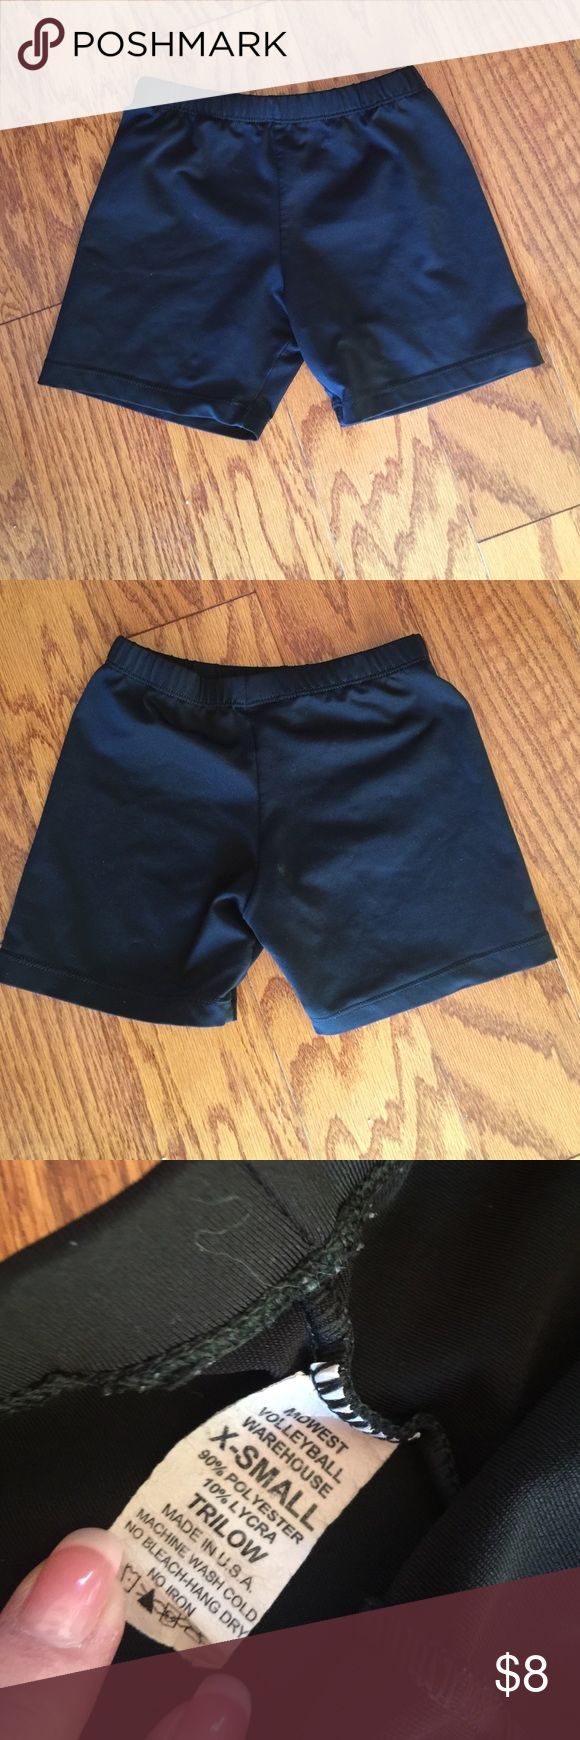 Midwest Volleyball Spandex Shorts EUC - worn once for dance competition. 90% polyester, 10% Lycra. No rips, snags or stains. Smoke free home. Shorts